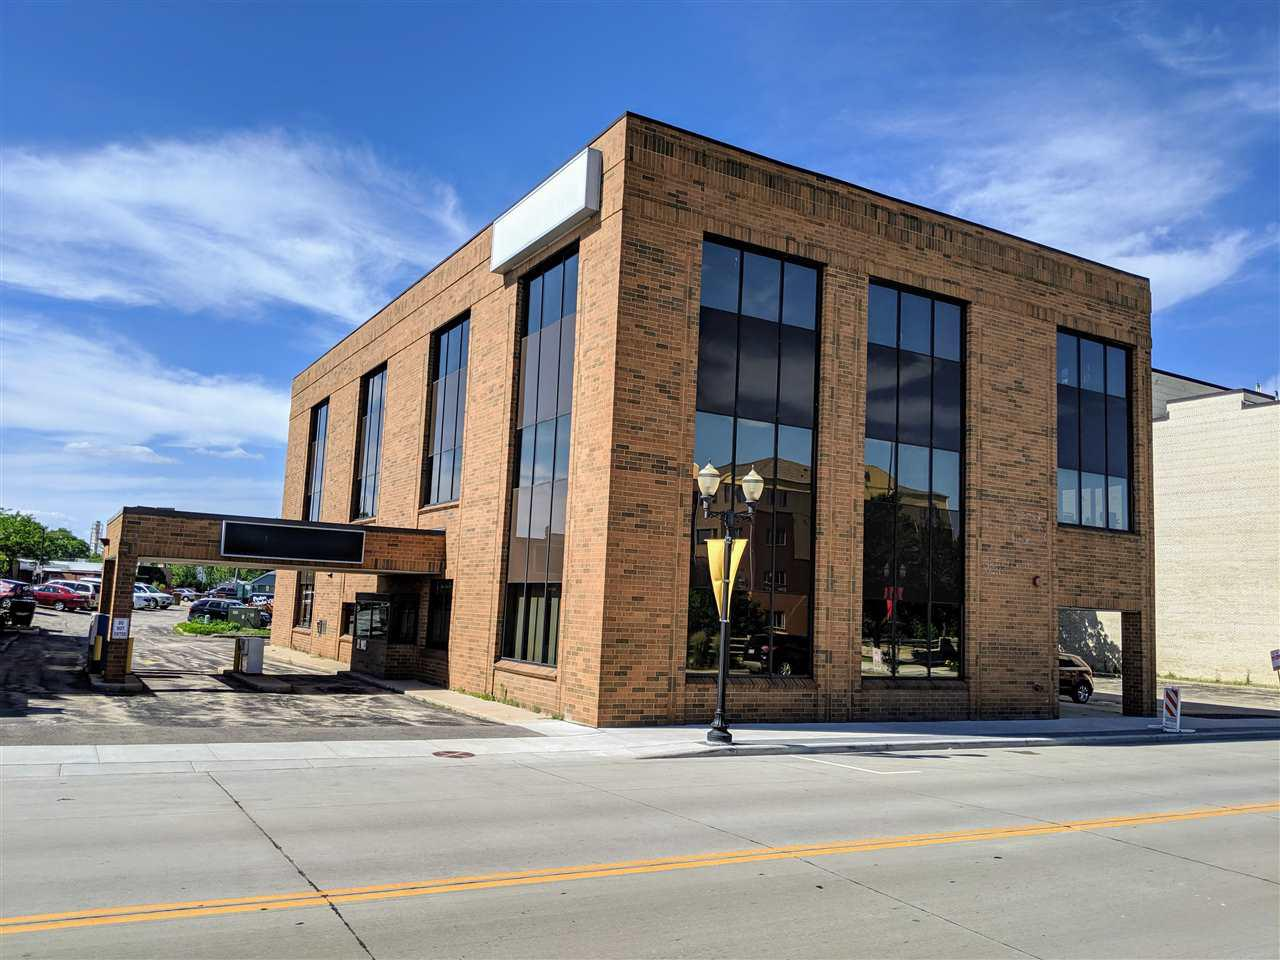 This all brick 3-story building in growing downtown Menasha provides space suitable for many types of business - restaurant, bakery, banking, office, retail, service, etc. Located near One Menasha Center and overlooking Menasha Marina offering excellent views. This highly visible property with a drive-thru is conveniently located with easy access to Highway 441.